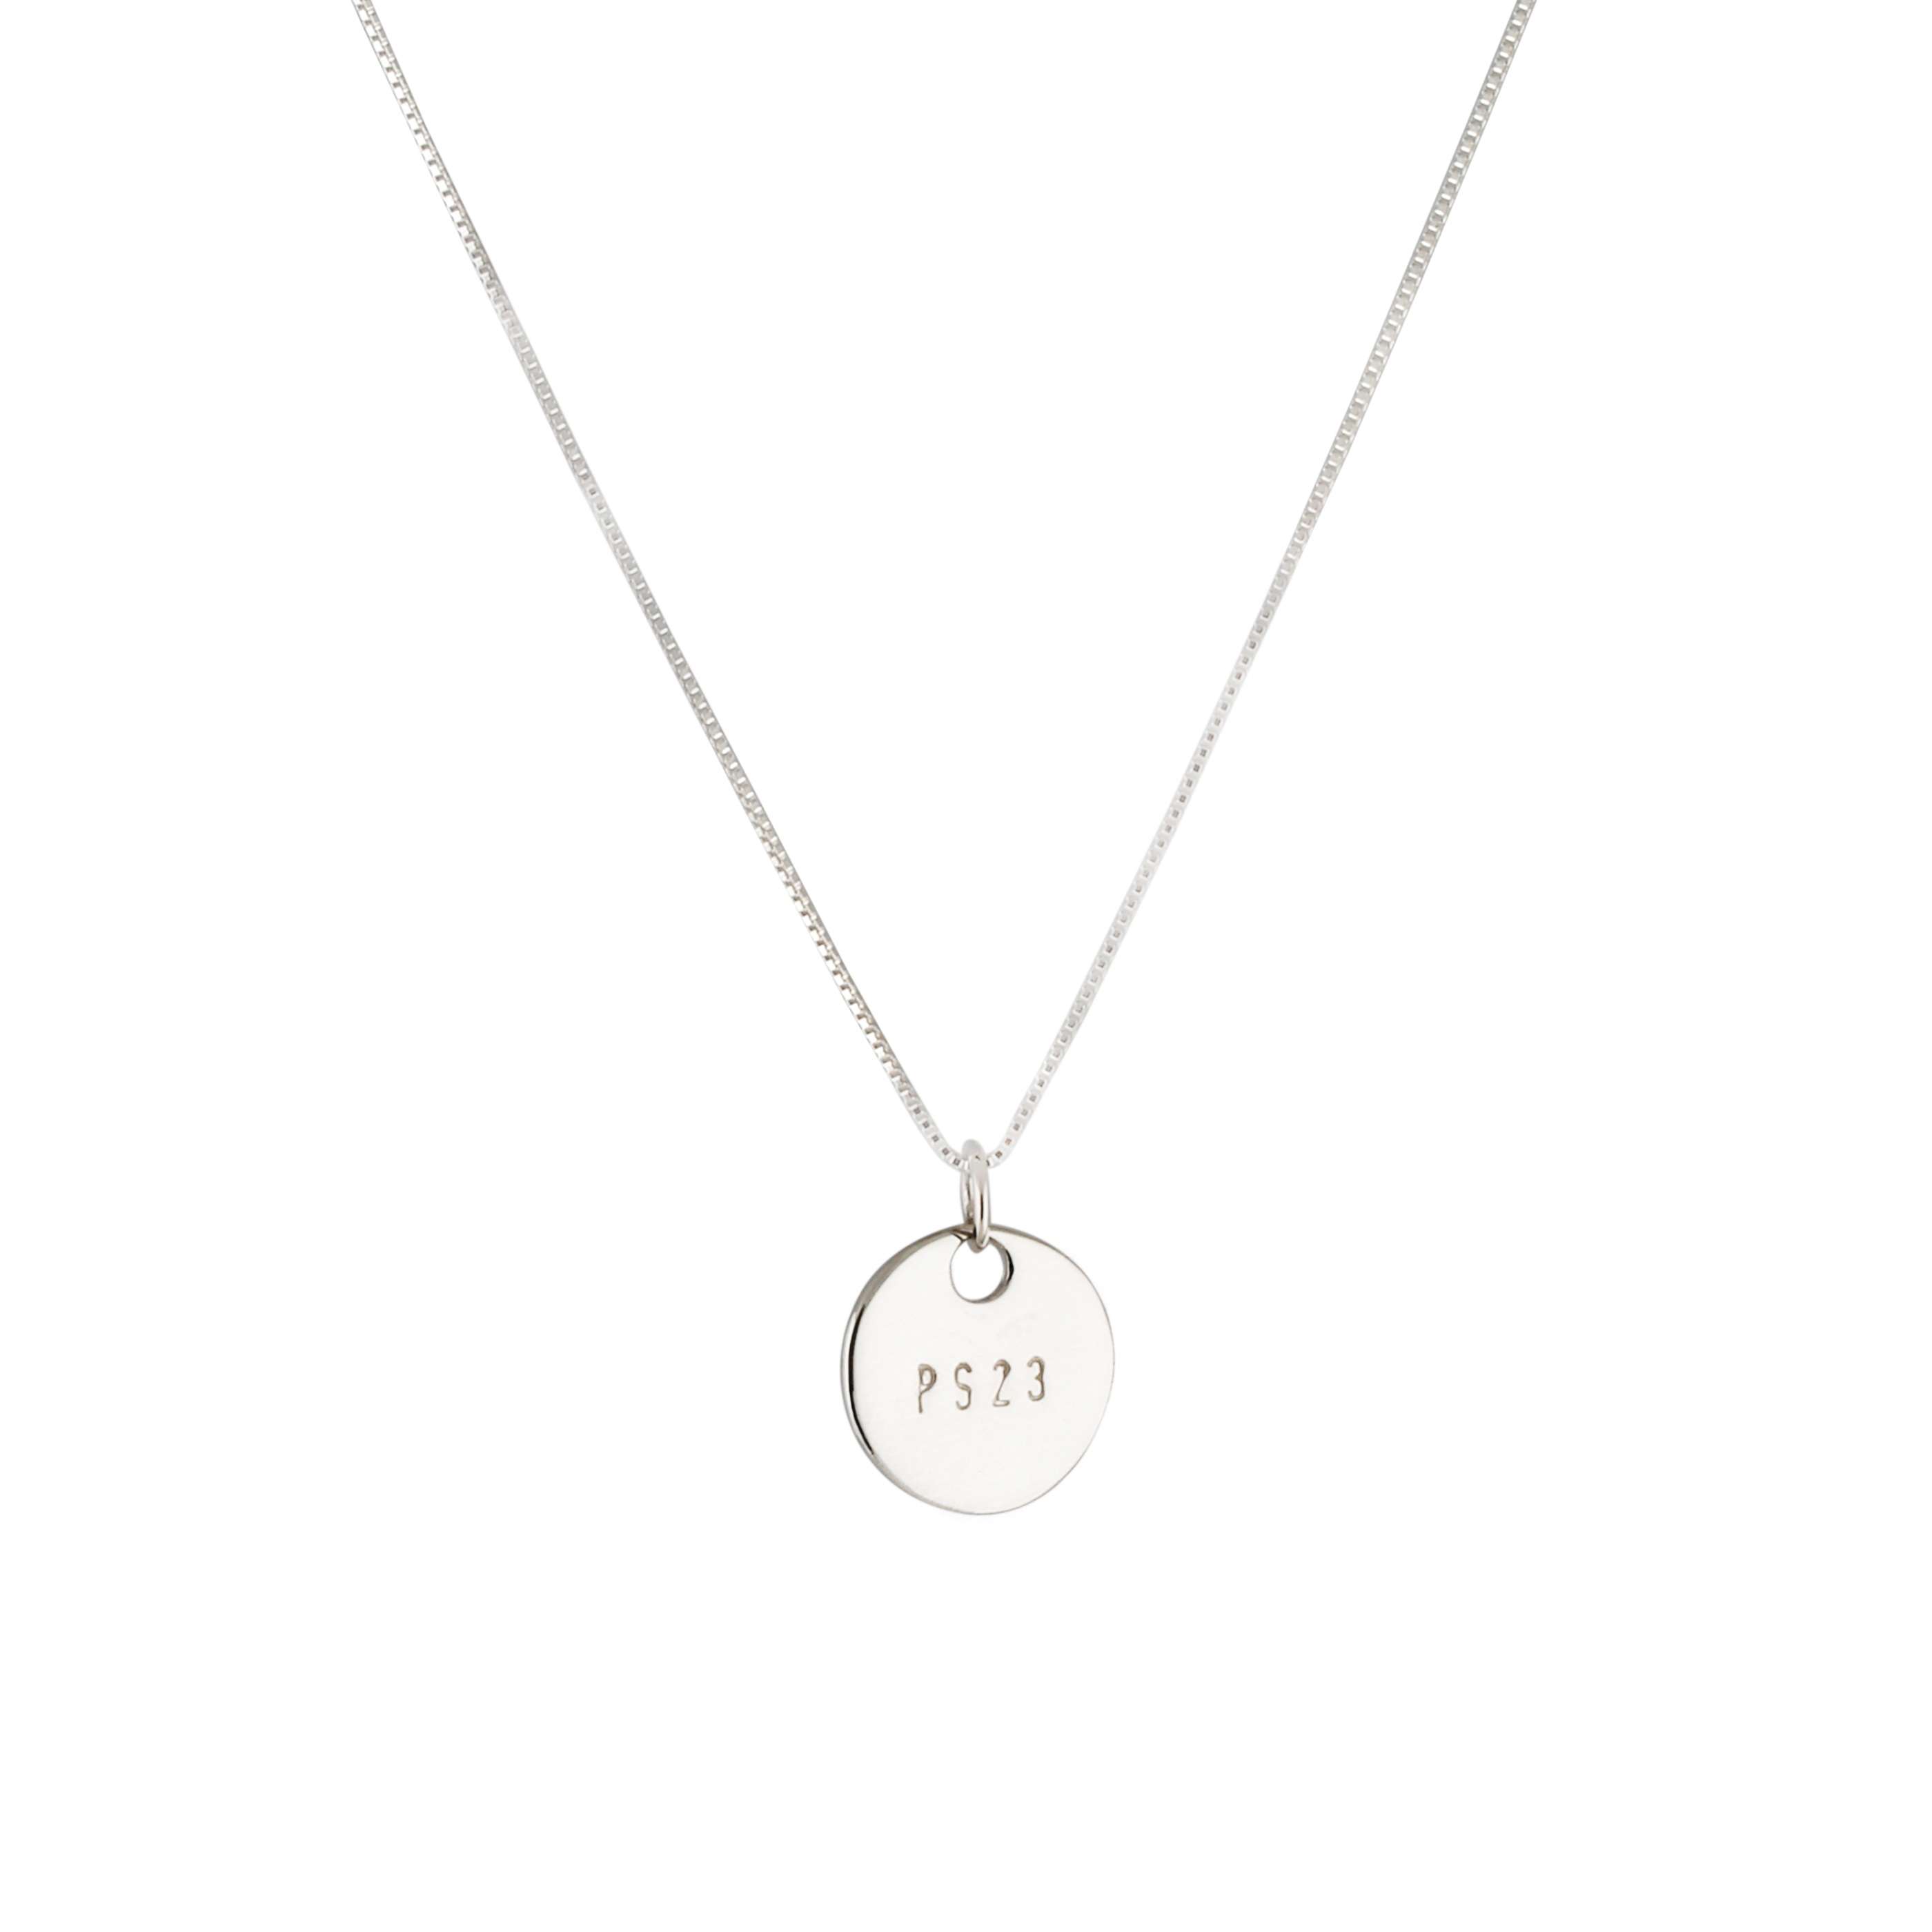 Ps23 silver small coin Necklace